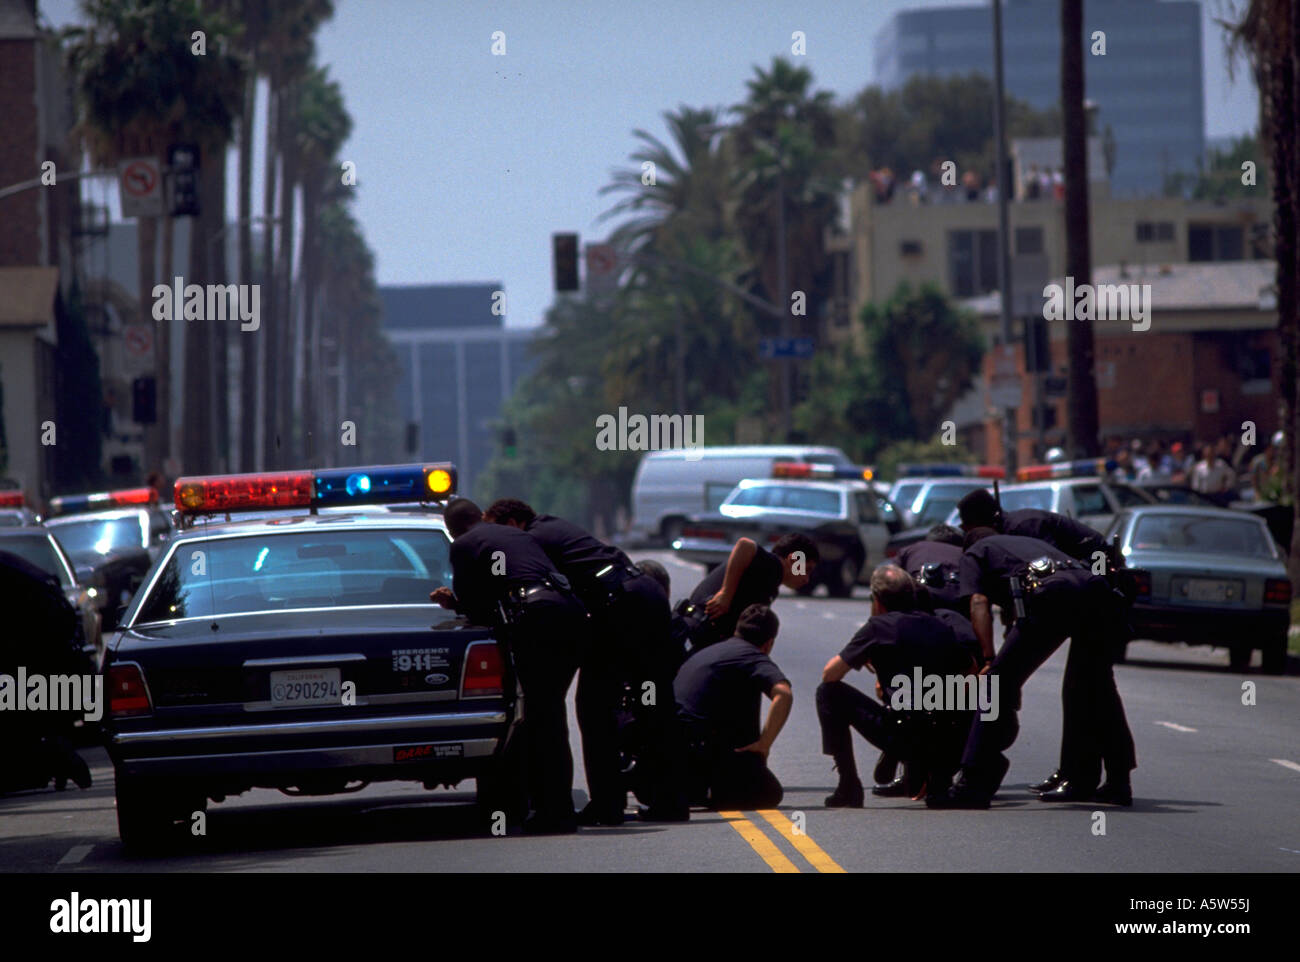 Painet hl0987 scene los angeles riots 1992 california police cars riot unrest policemen chaos anarchy teamwork strategy - Stock Image